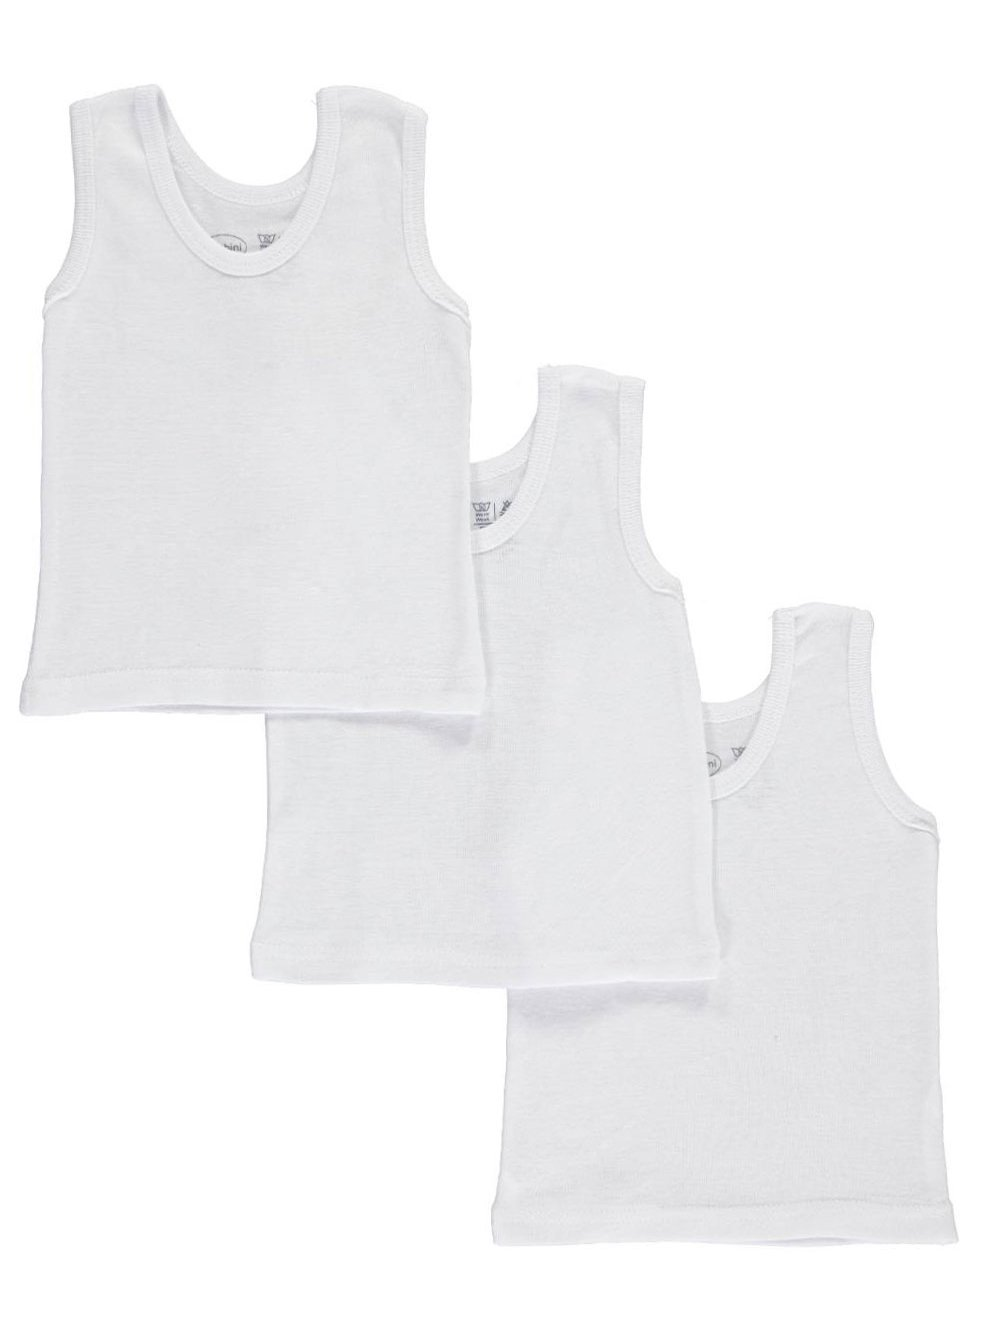 Bambini Unisex Baby 3-Pack Tank Tops